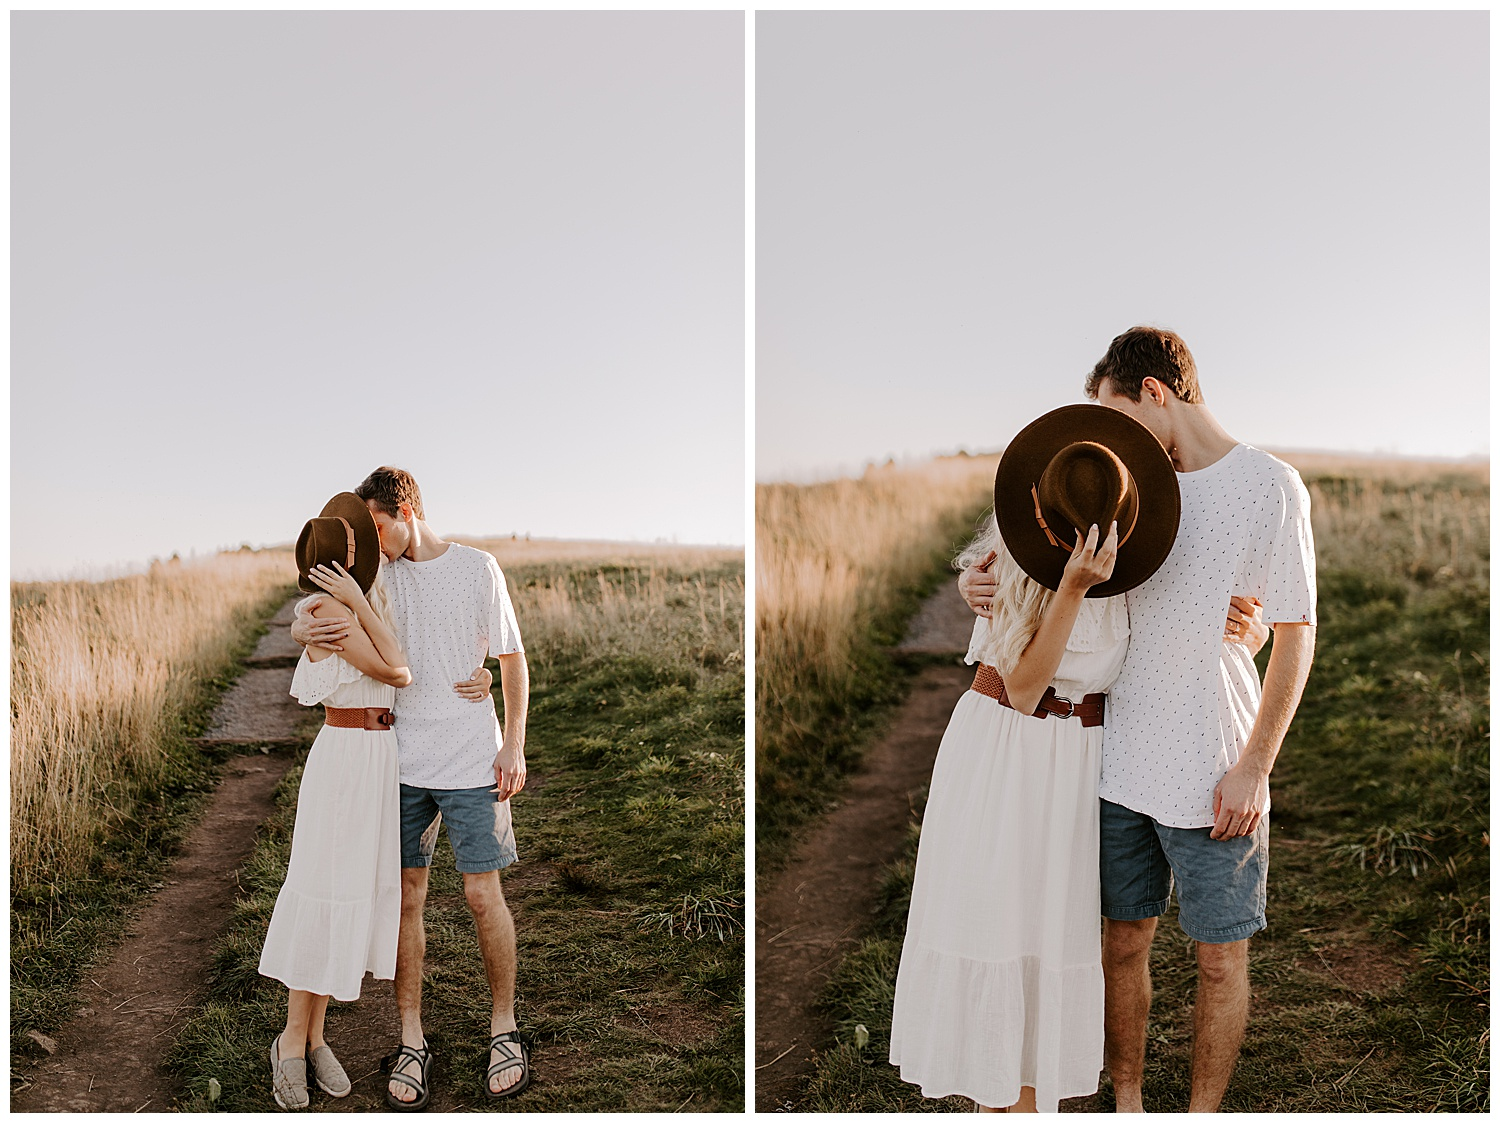 HANNAH_NICK_MAXPATCH_ENGAGEMENT2019-09-05_0044.jpg